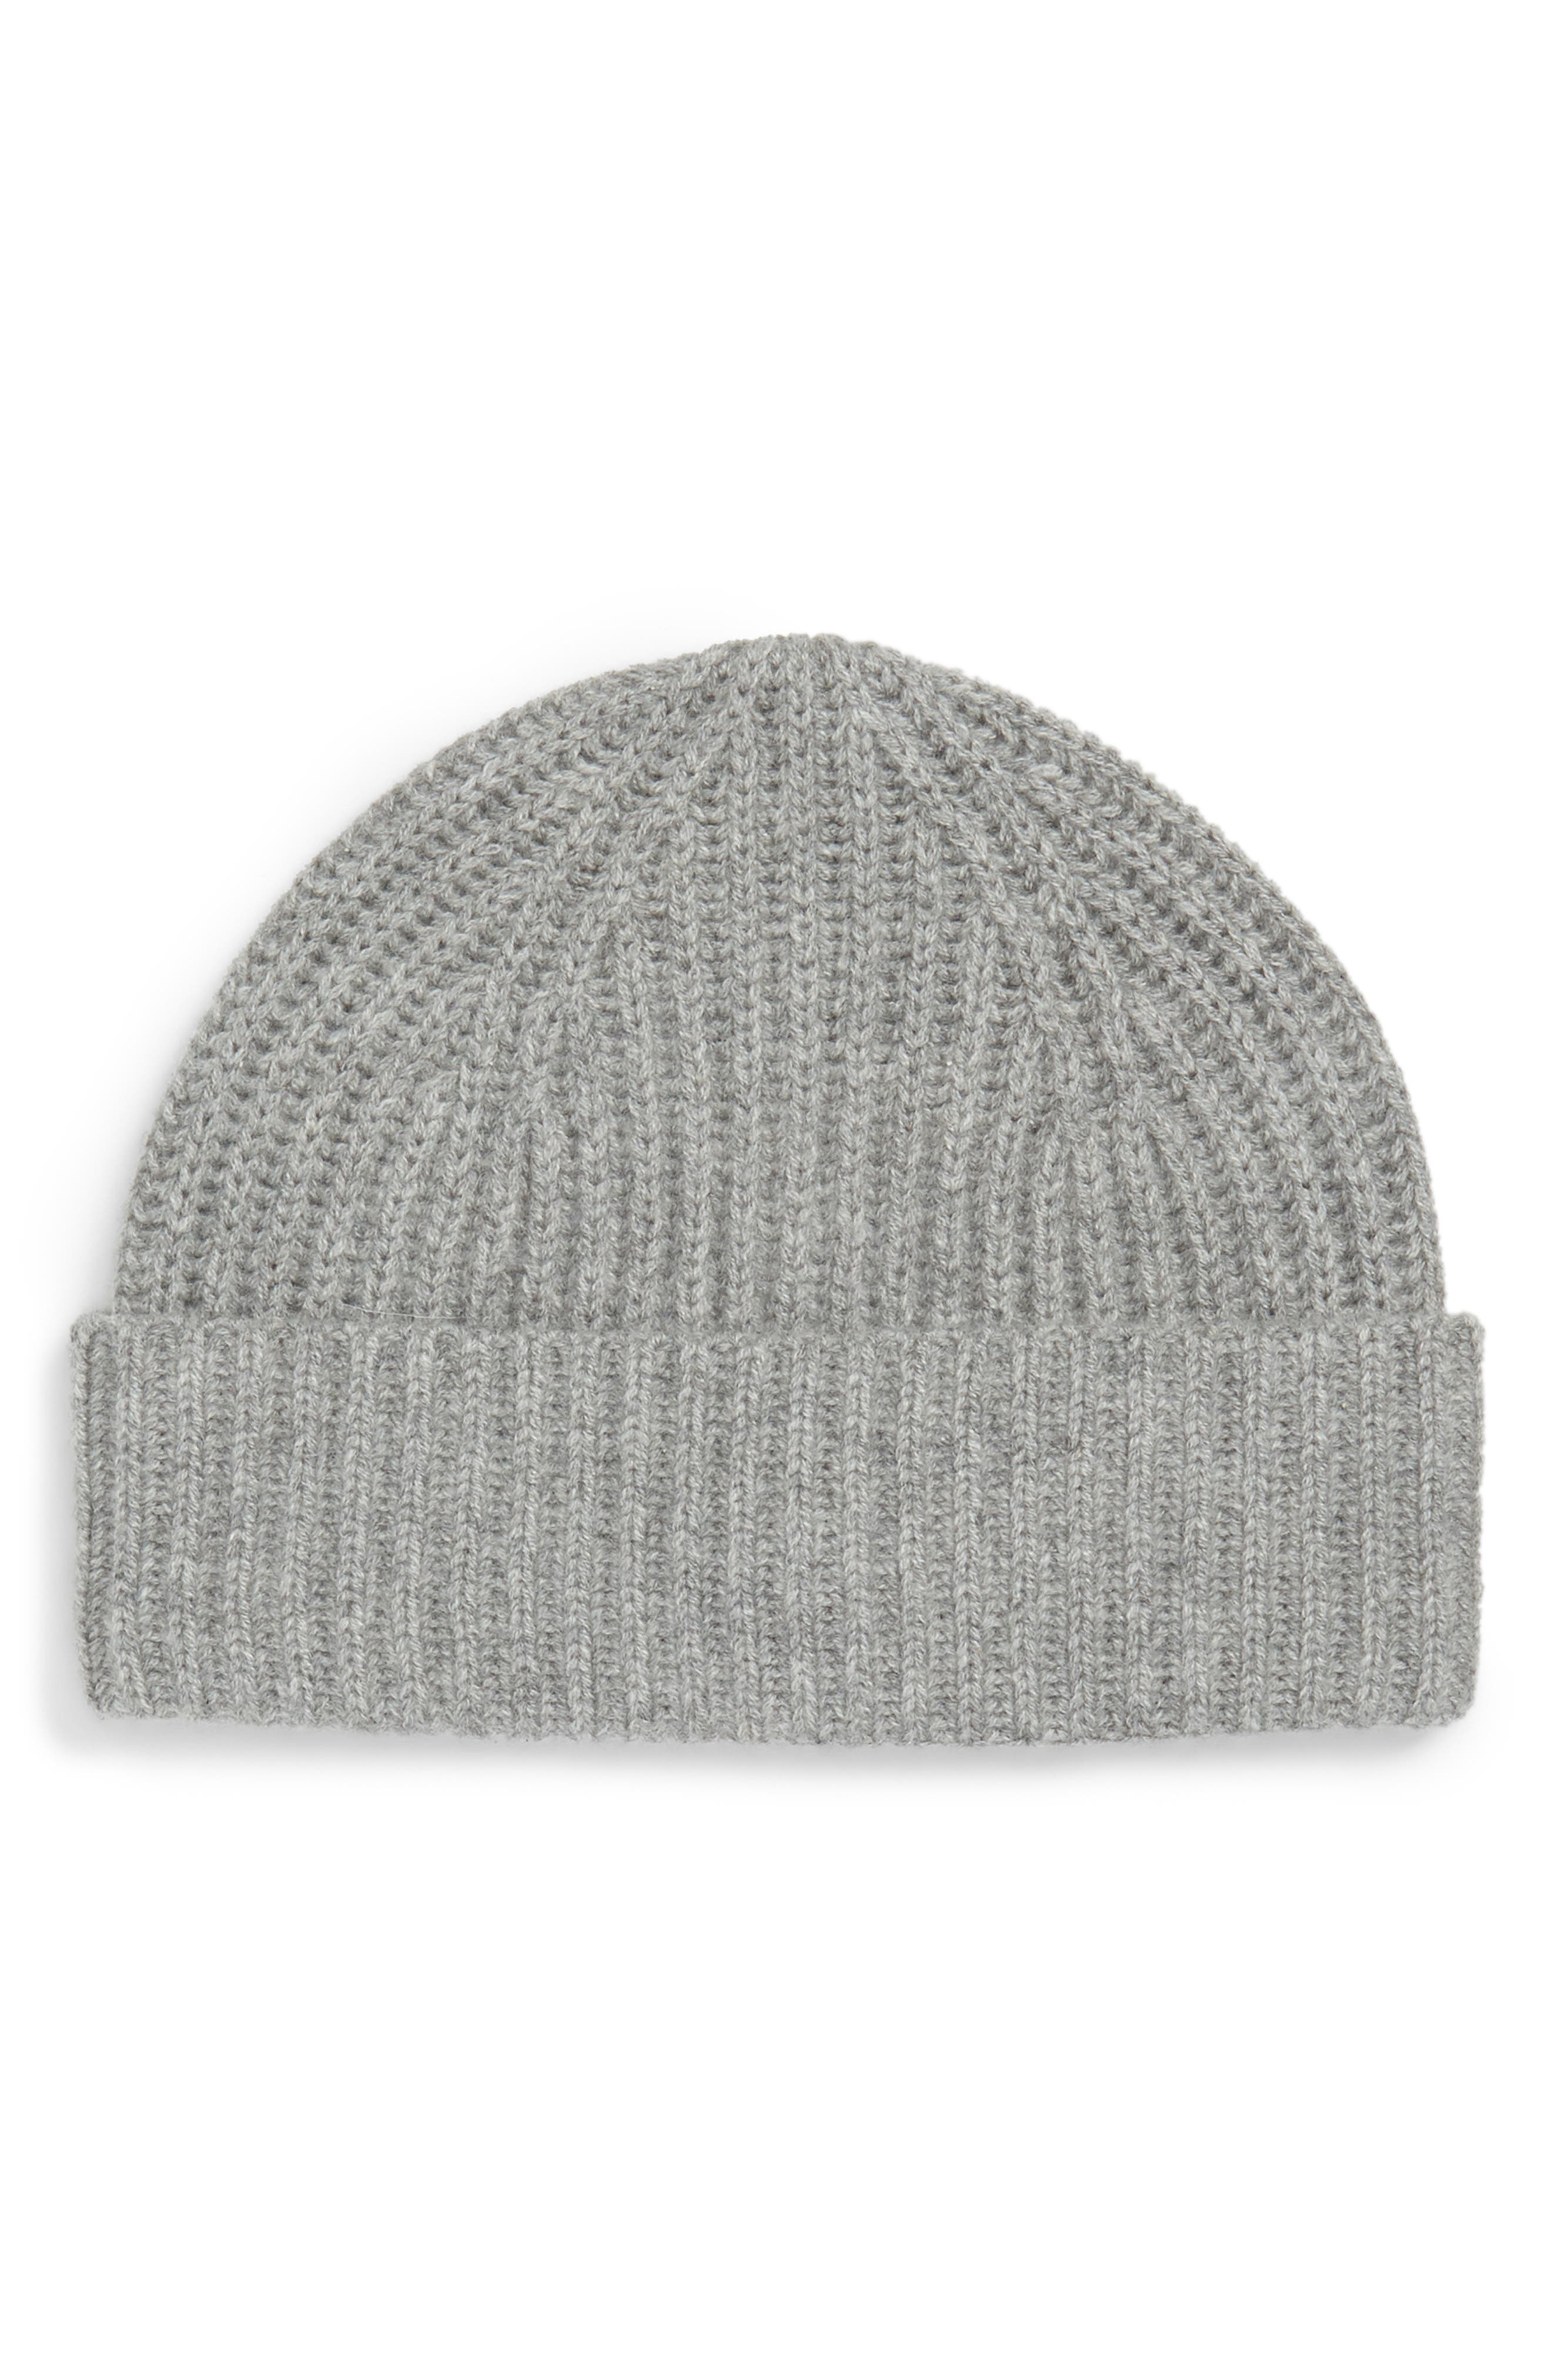 Cashmere Knit Cap,                         Main,                         color, LIGHT GREY HEATHER